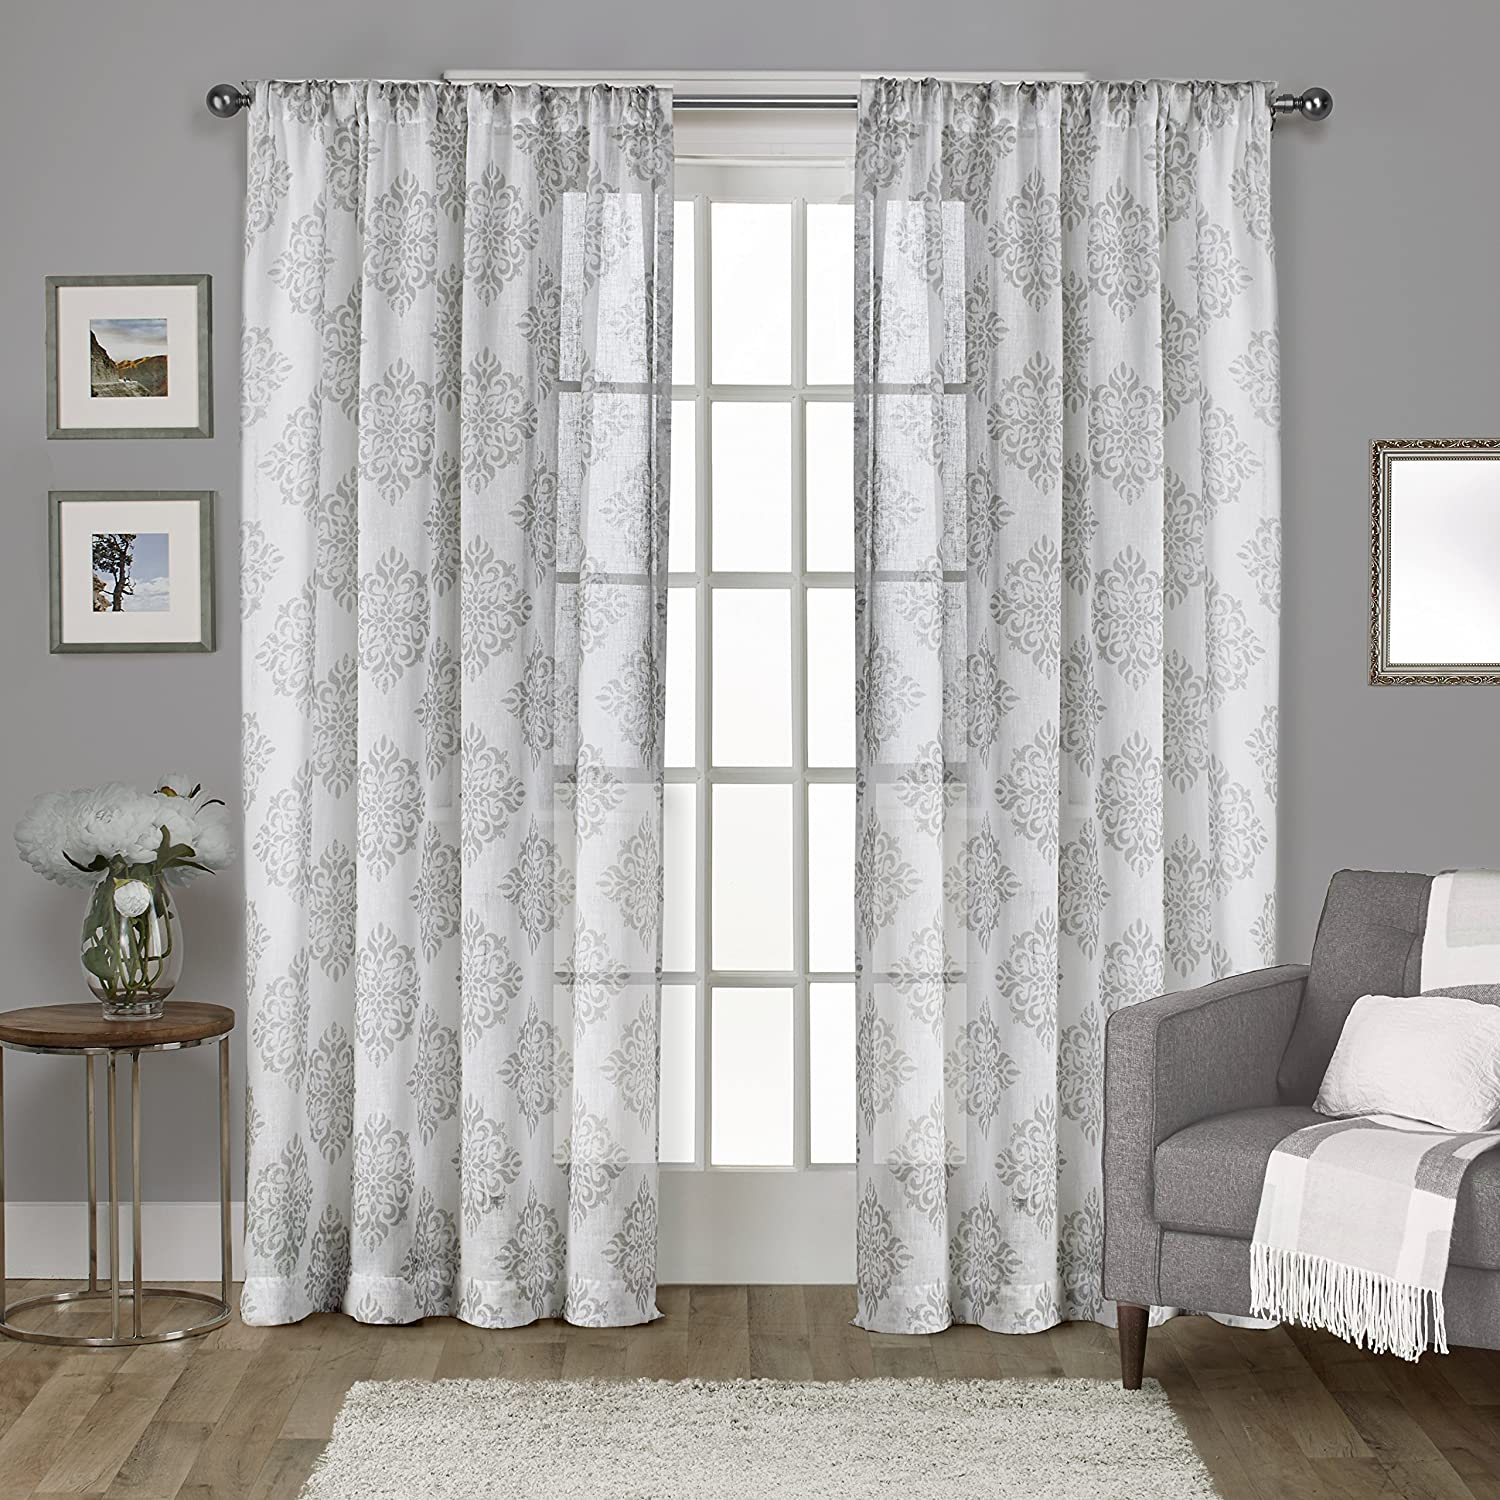 Exclusive Home Curtains Nagano Medallion Belgian Linen Window Curtain Panel Pair with Rod Pocket, 54x96, Dove Grey, 2 Piece